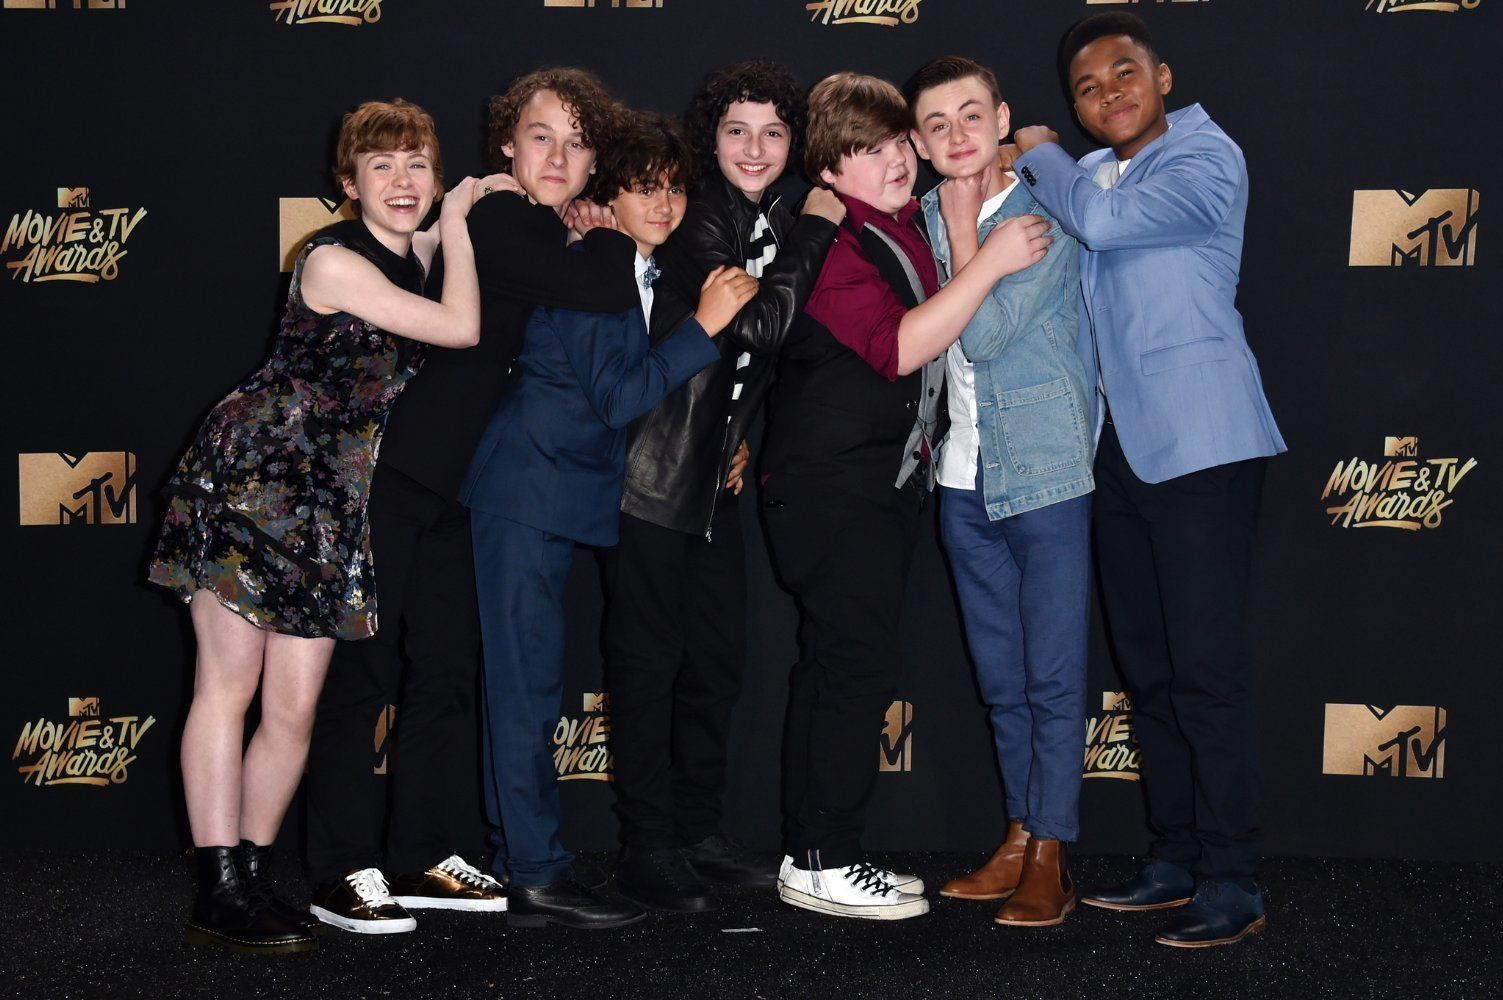 Huffpost Breaking News U S And World News Cast Stranger Things It The Clown Movie It Cast